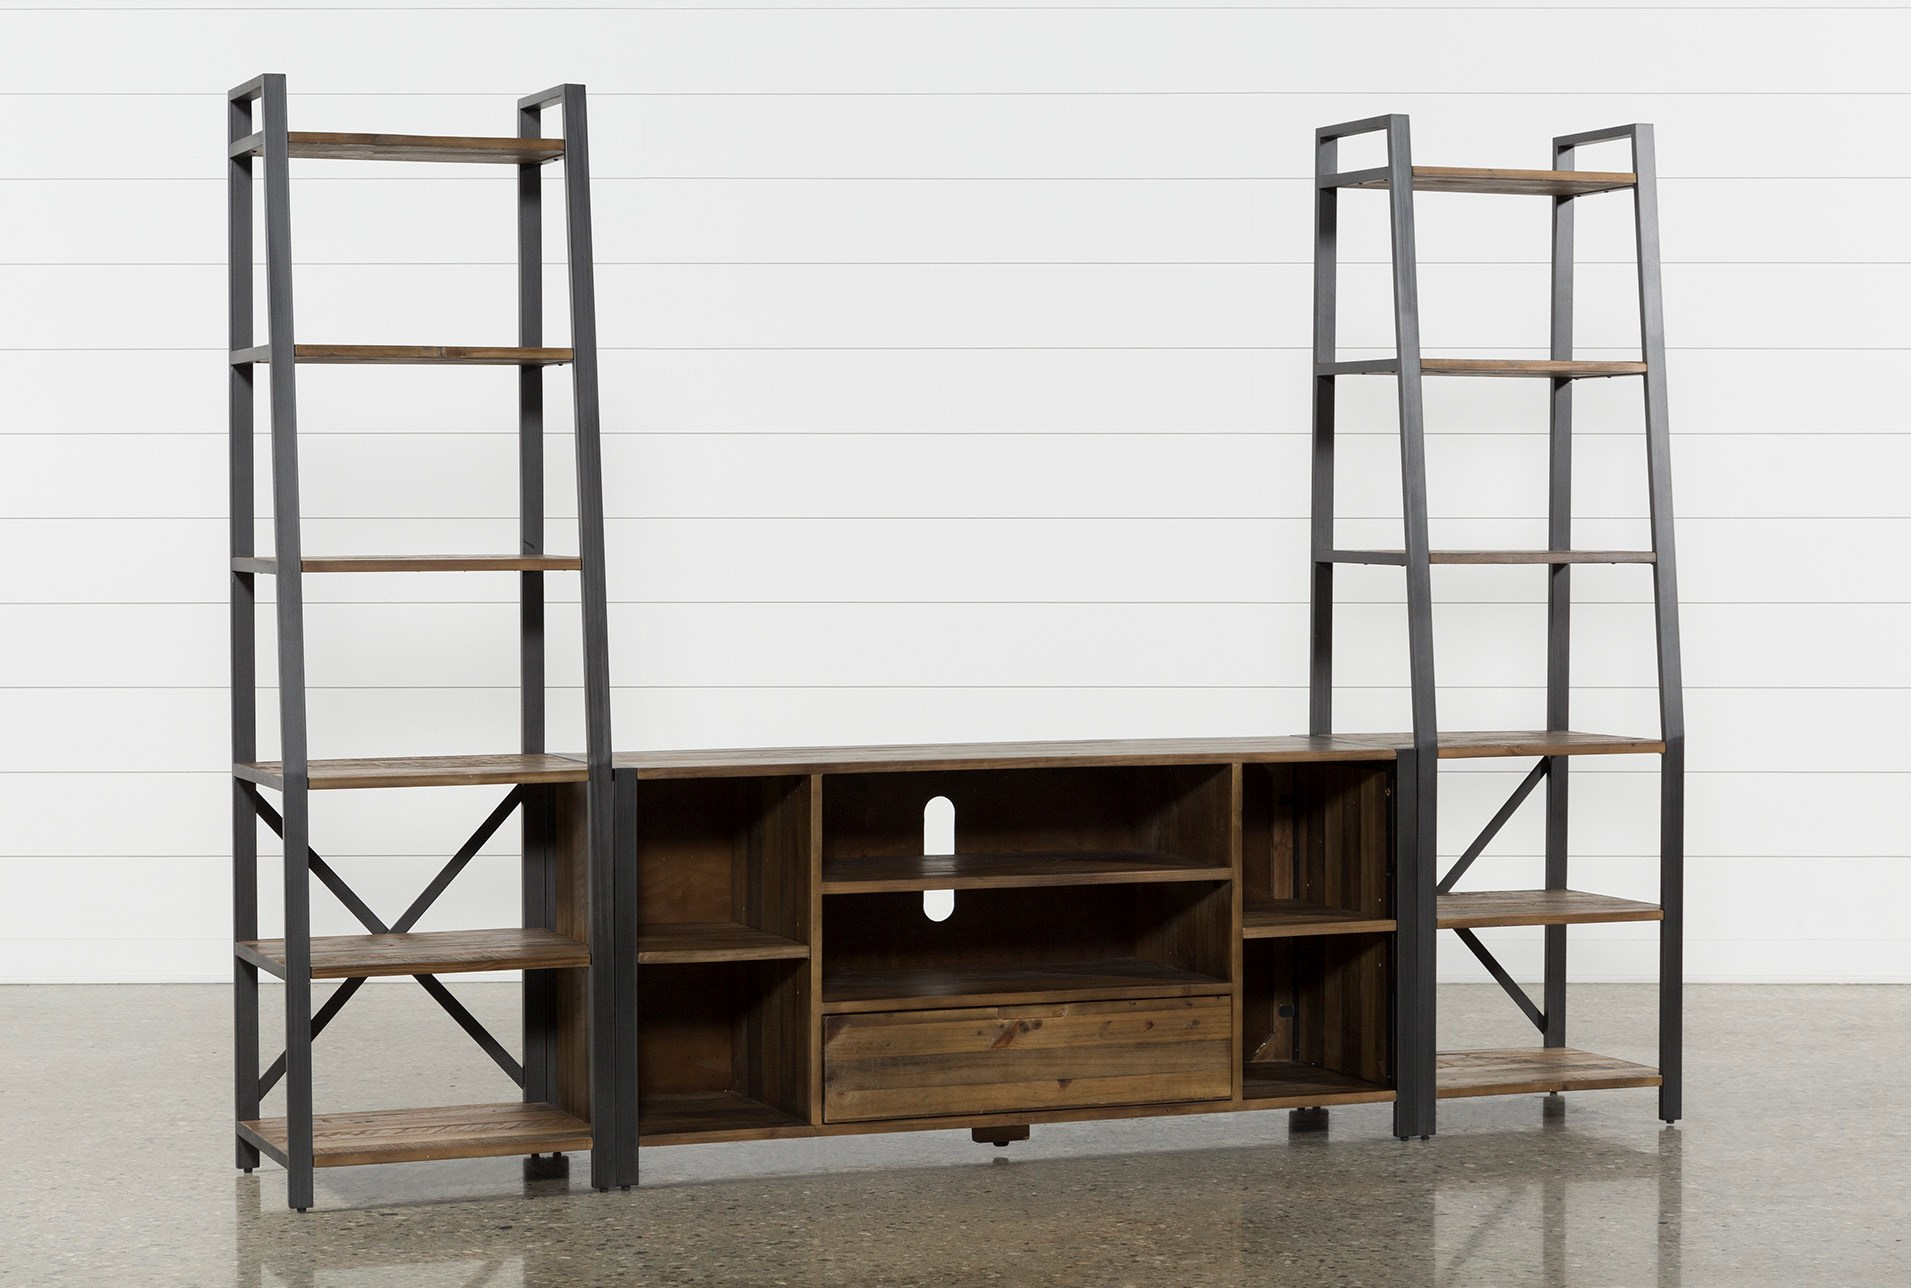 Marvin Rustic Natural 3 Piece Entertainment Center Qty 1 Has Been Successfully Added To Your Cart